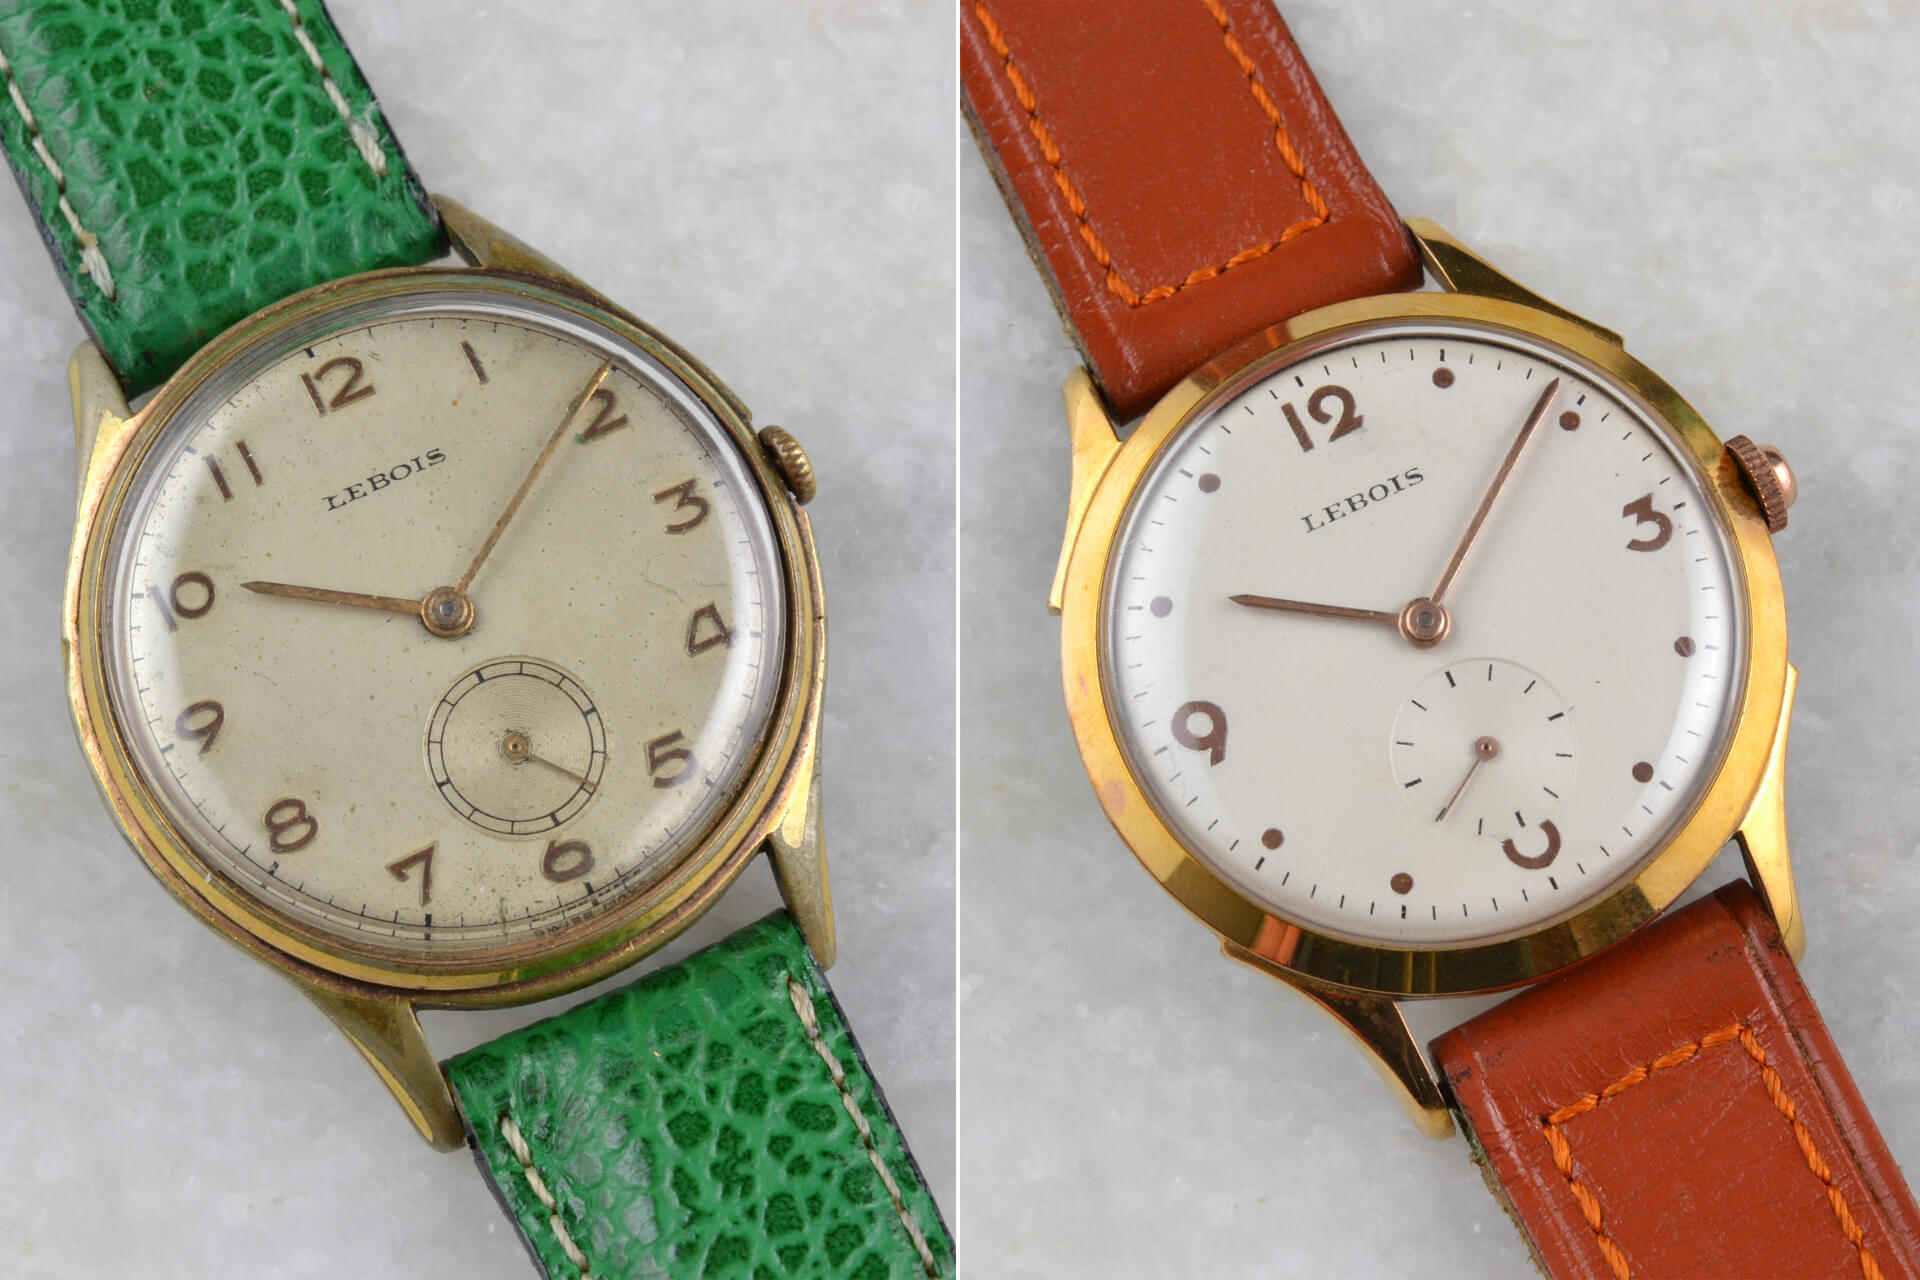 Lebois 1950s & 1960s Classic Small Seconds